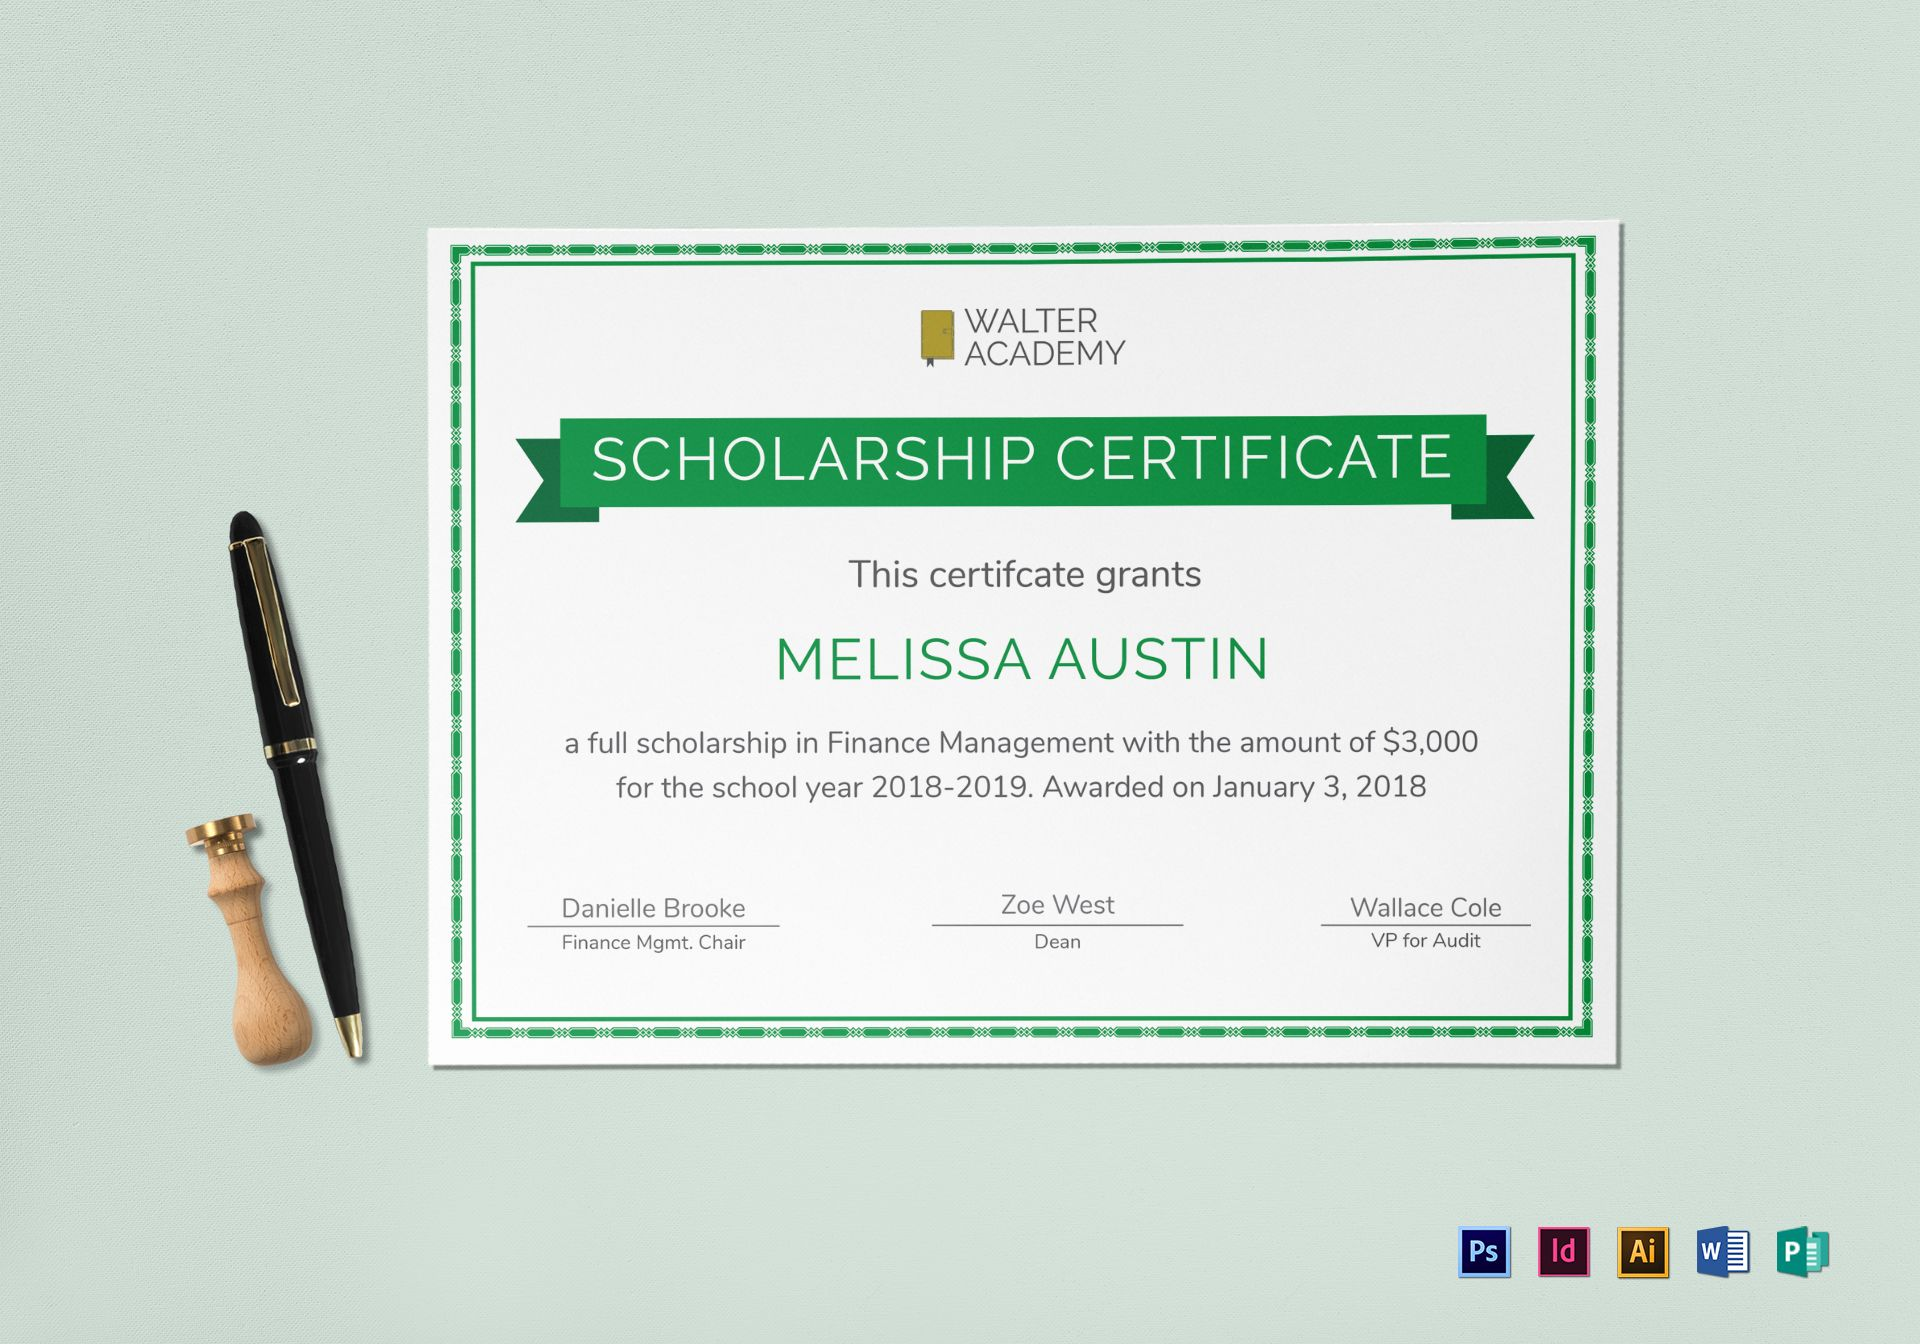 microsoft publisher award certificate templates - scholarship certificate design template in psd word